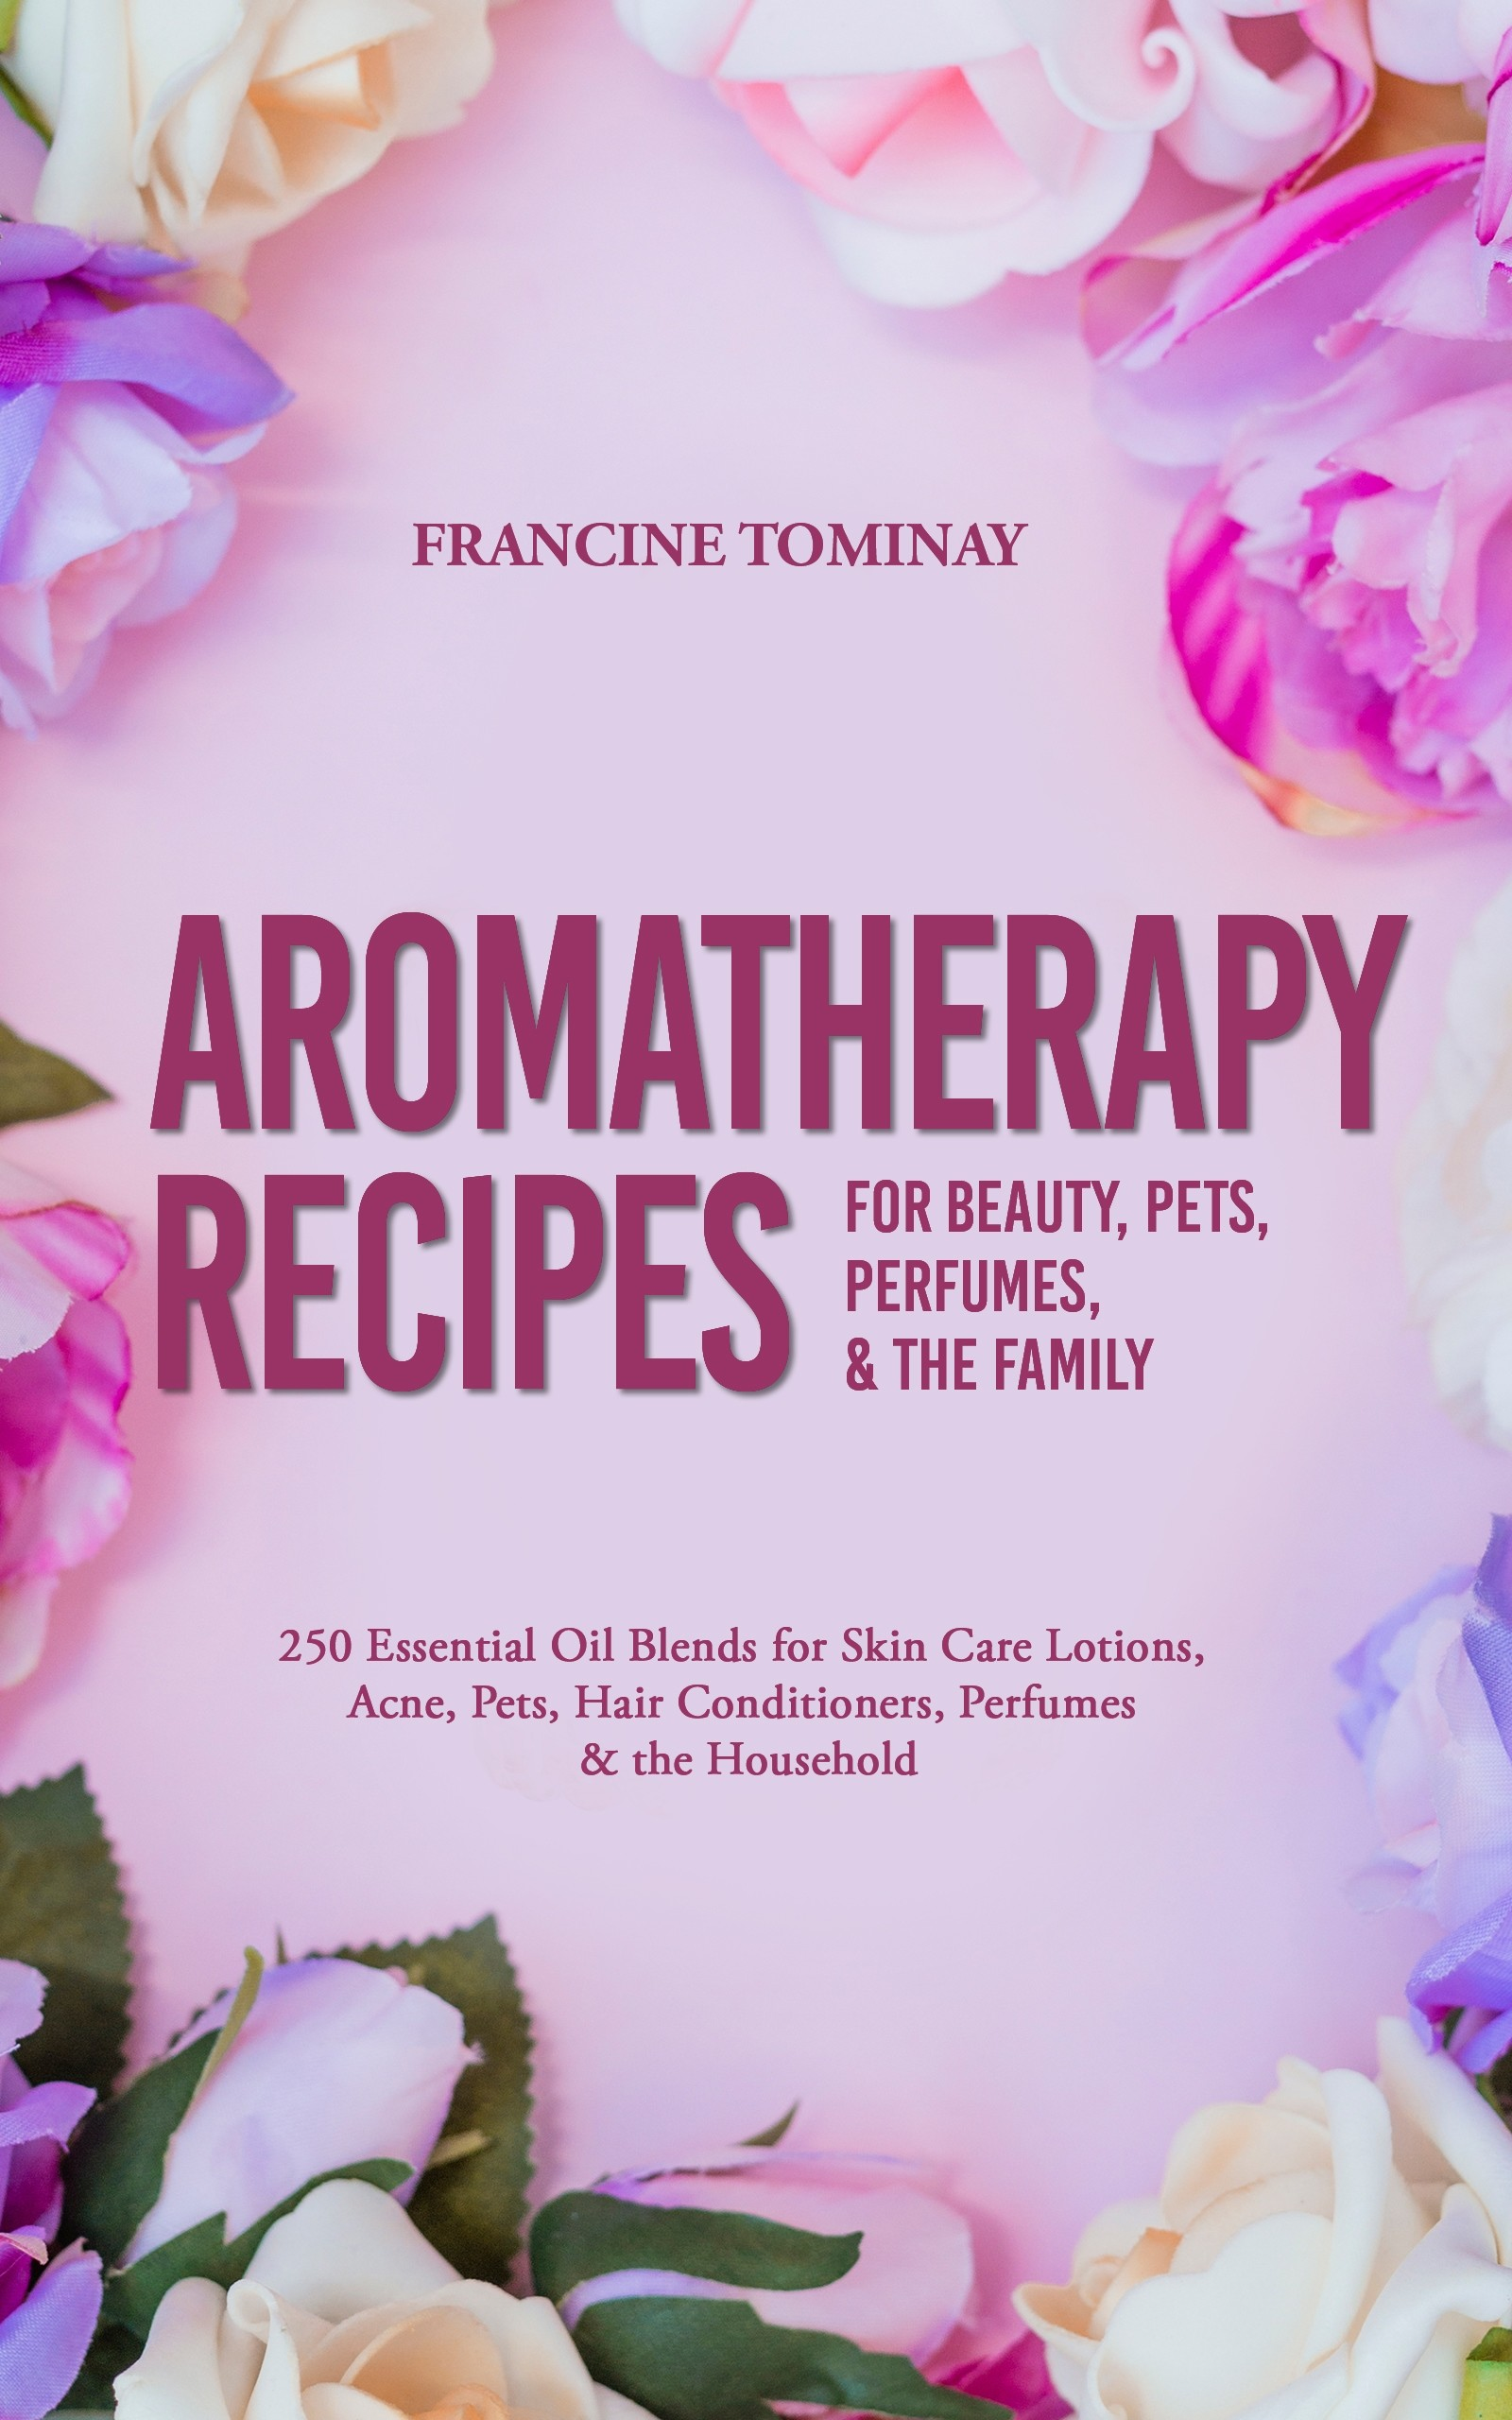 Aromatherapy Recipes for Beauty, Pets, Perfumes and the Family